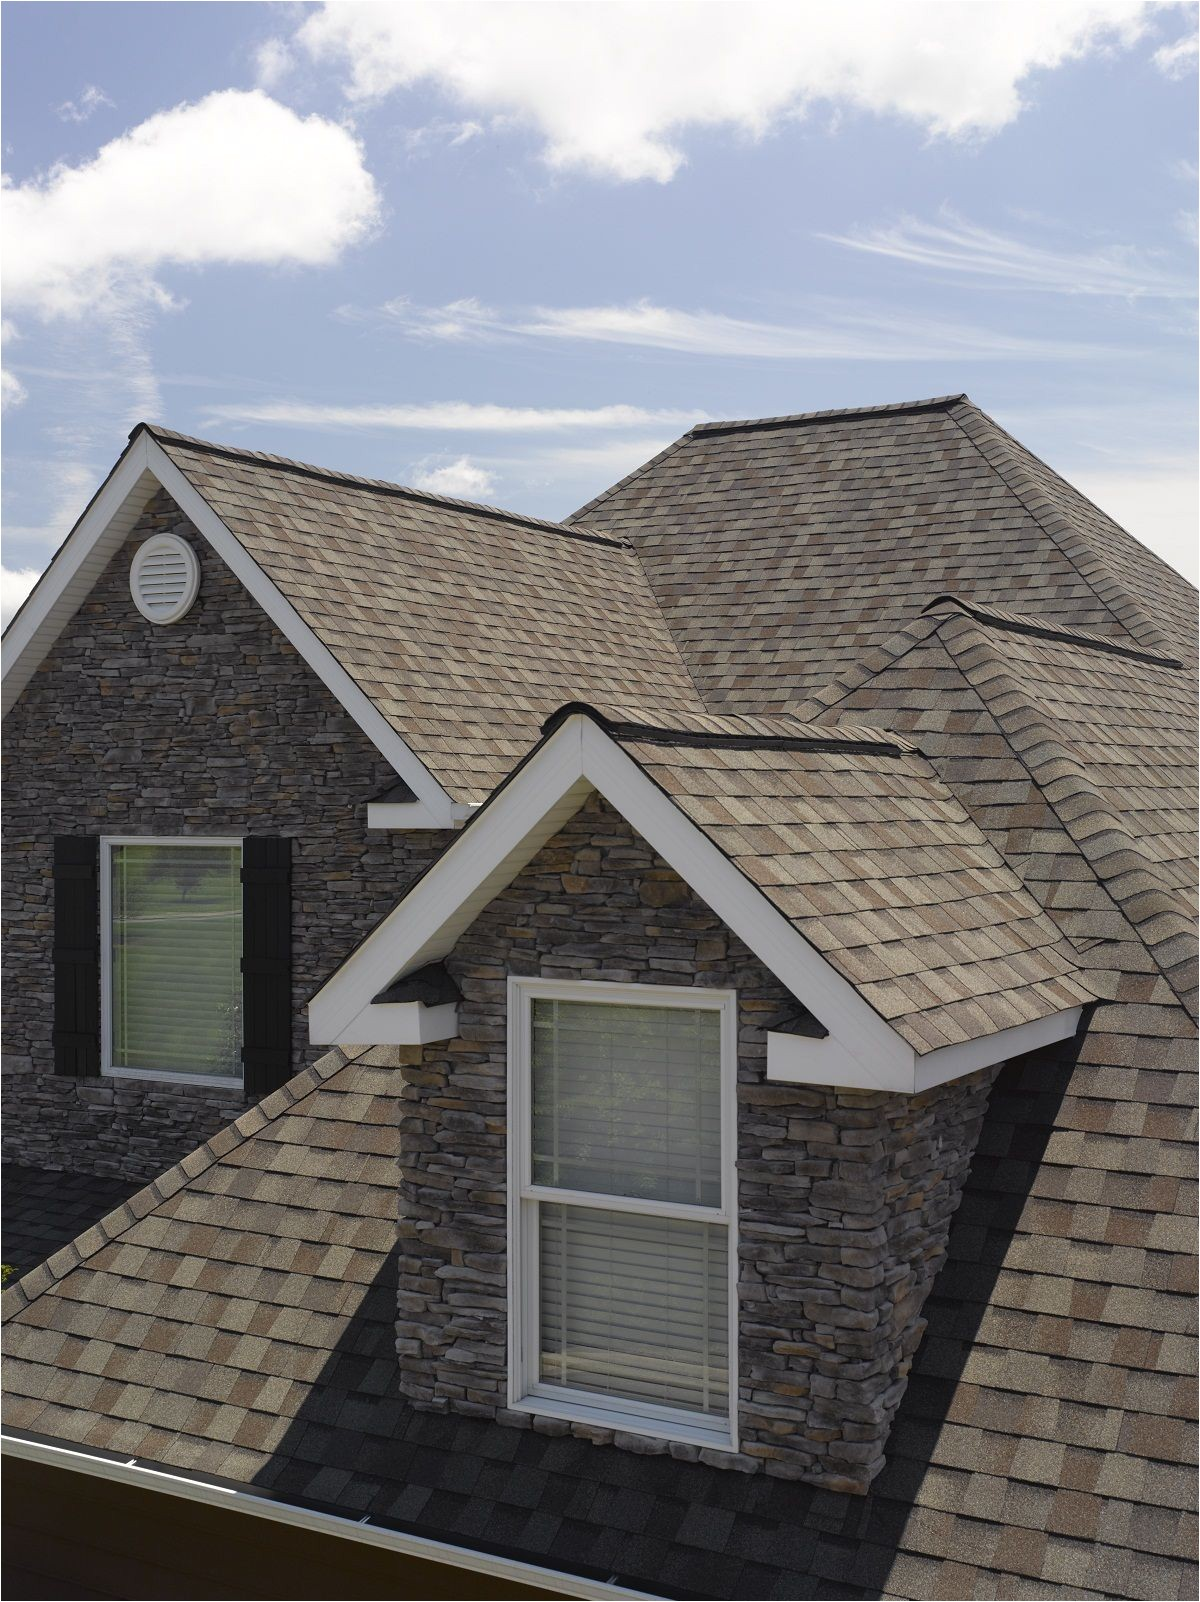 Certainteed Landmark Ir Colonial Slate Certainteed Landmark Shingles In Weathered Wood Residentialroofing